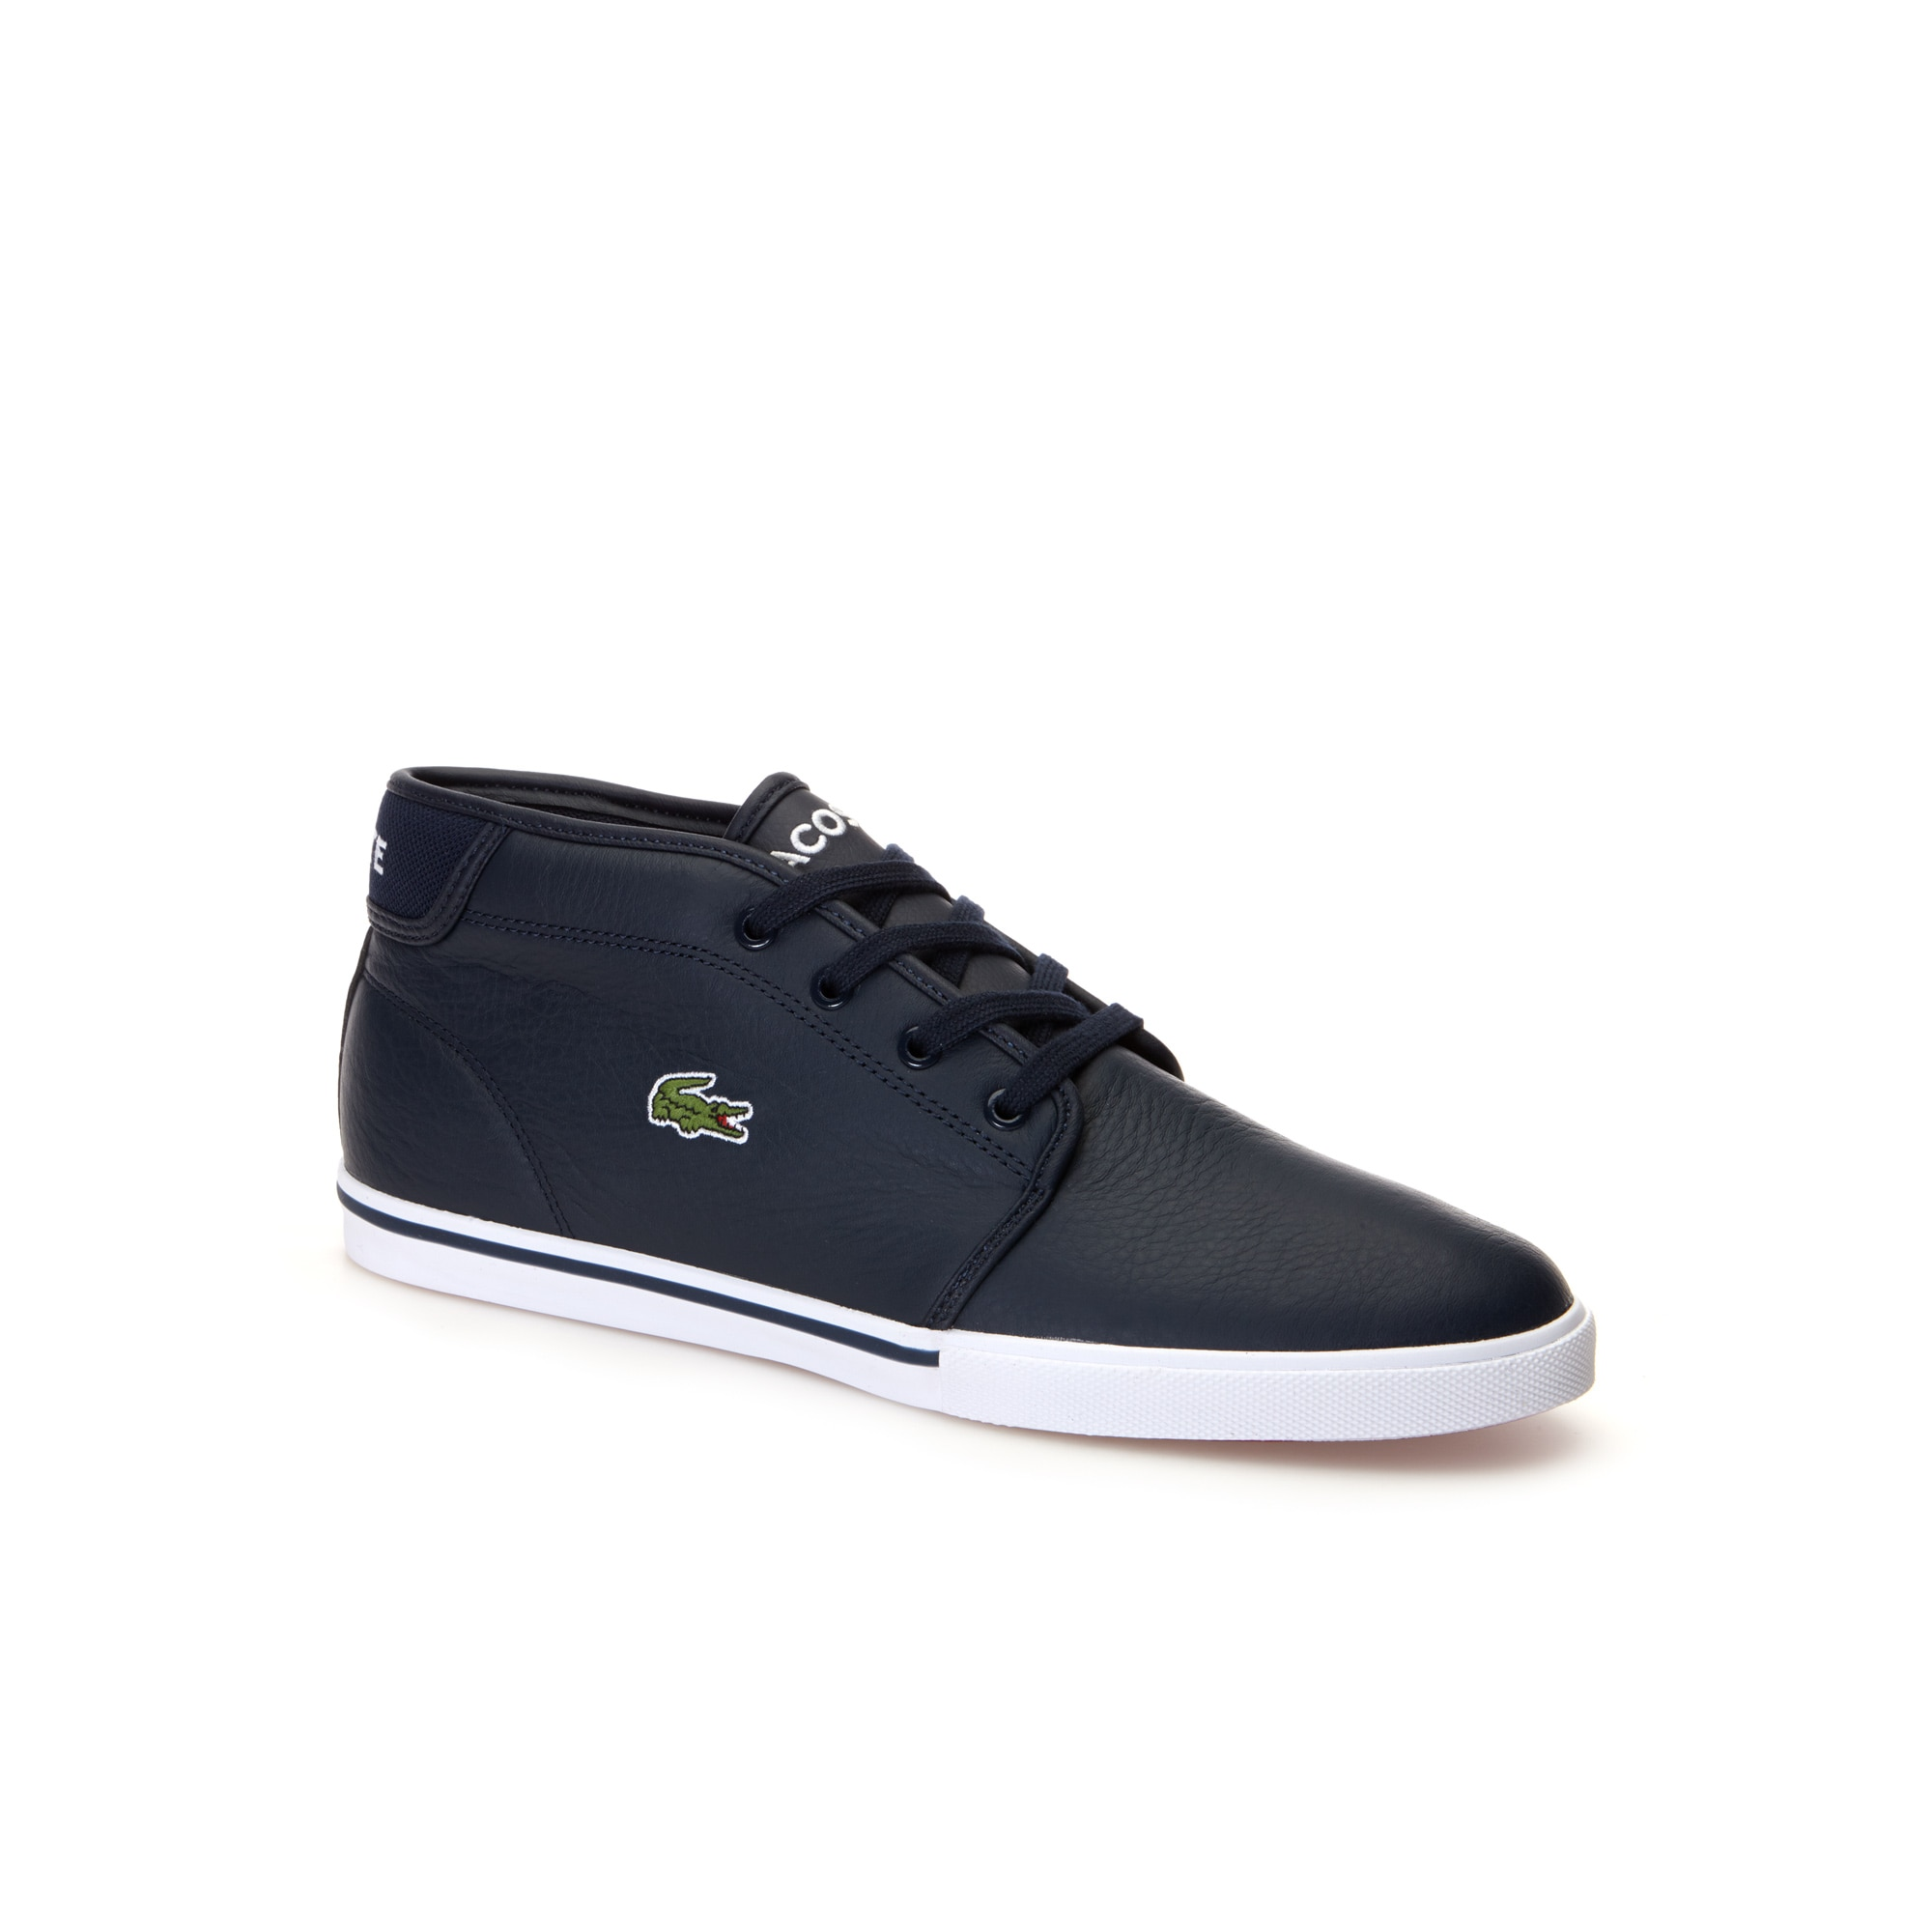 Lacoste Shoes Black Friday